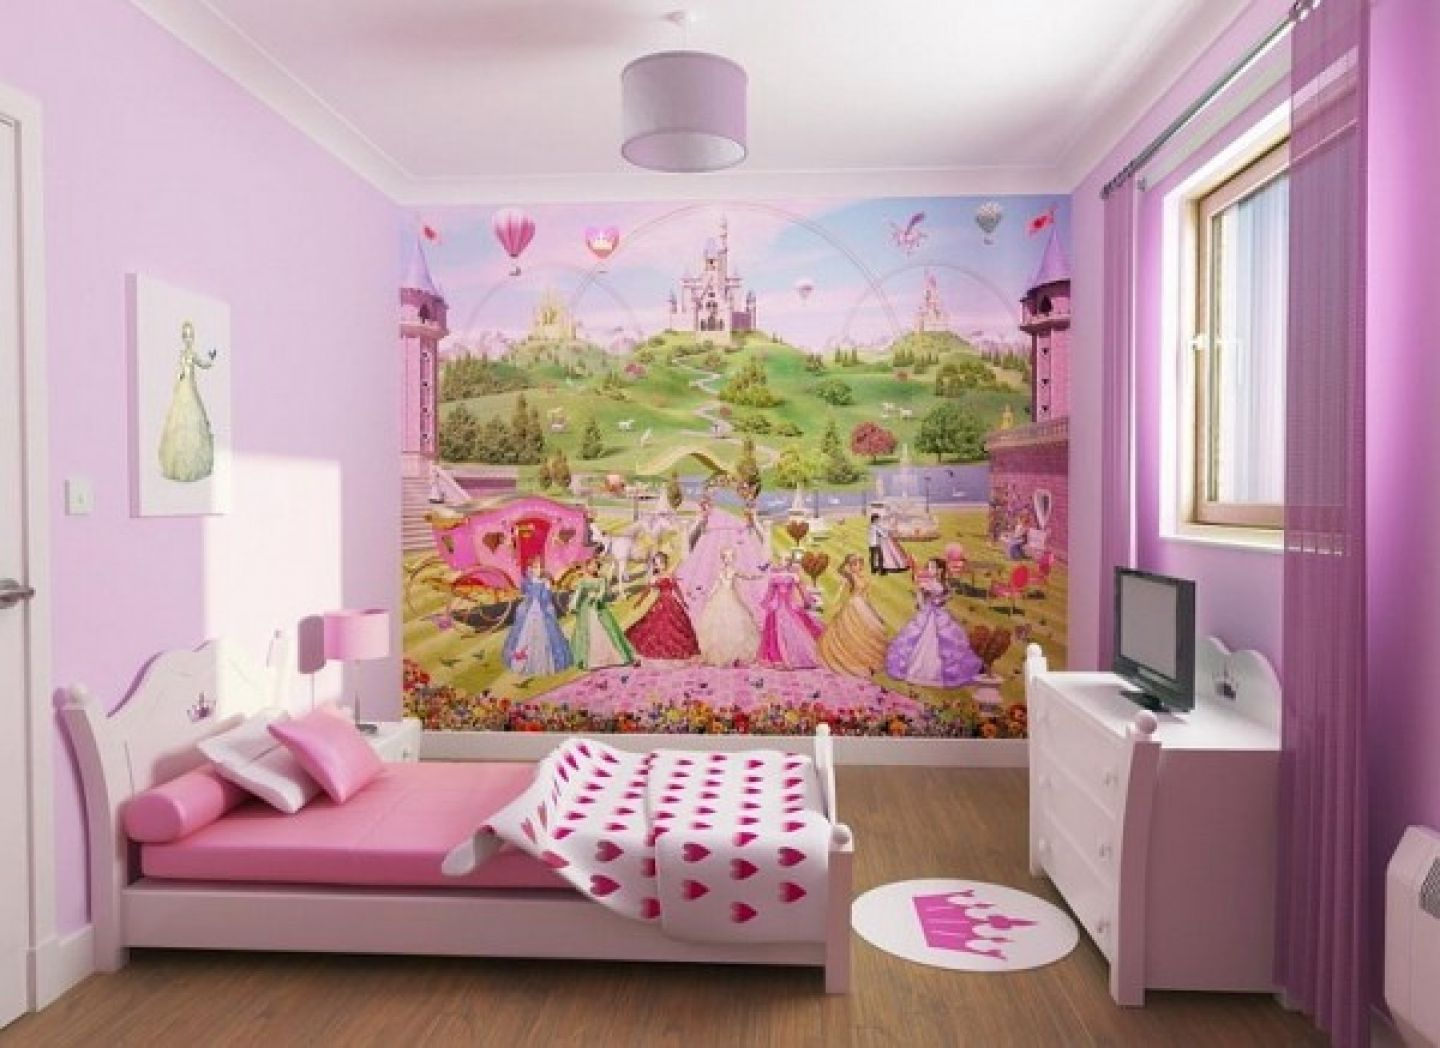 Girls Bedroom Decorating Ideas Classy Girls' Bedroom Style  Bedrooms Small Bedroom Decorating And Room Decorating Inspiration